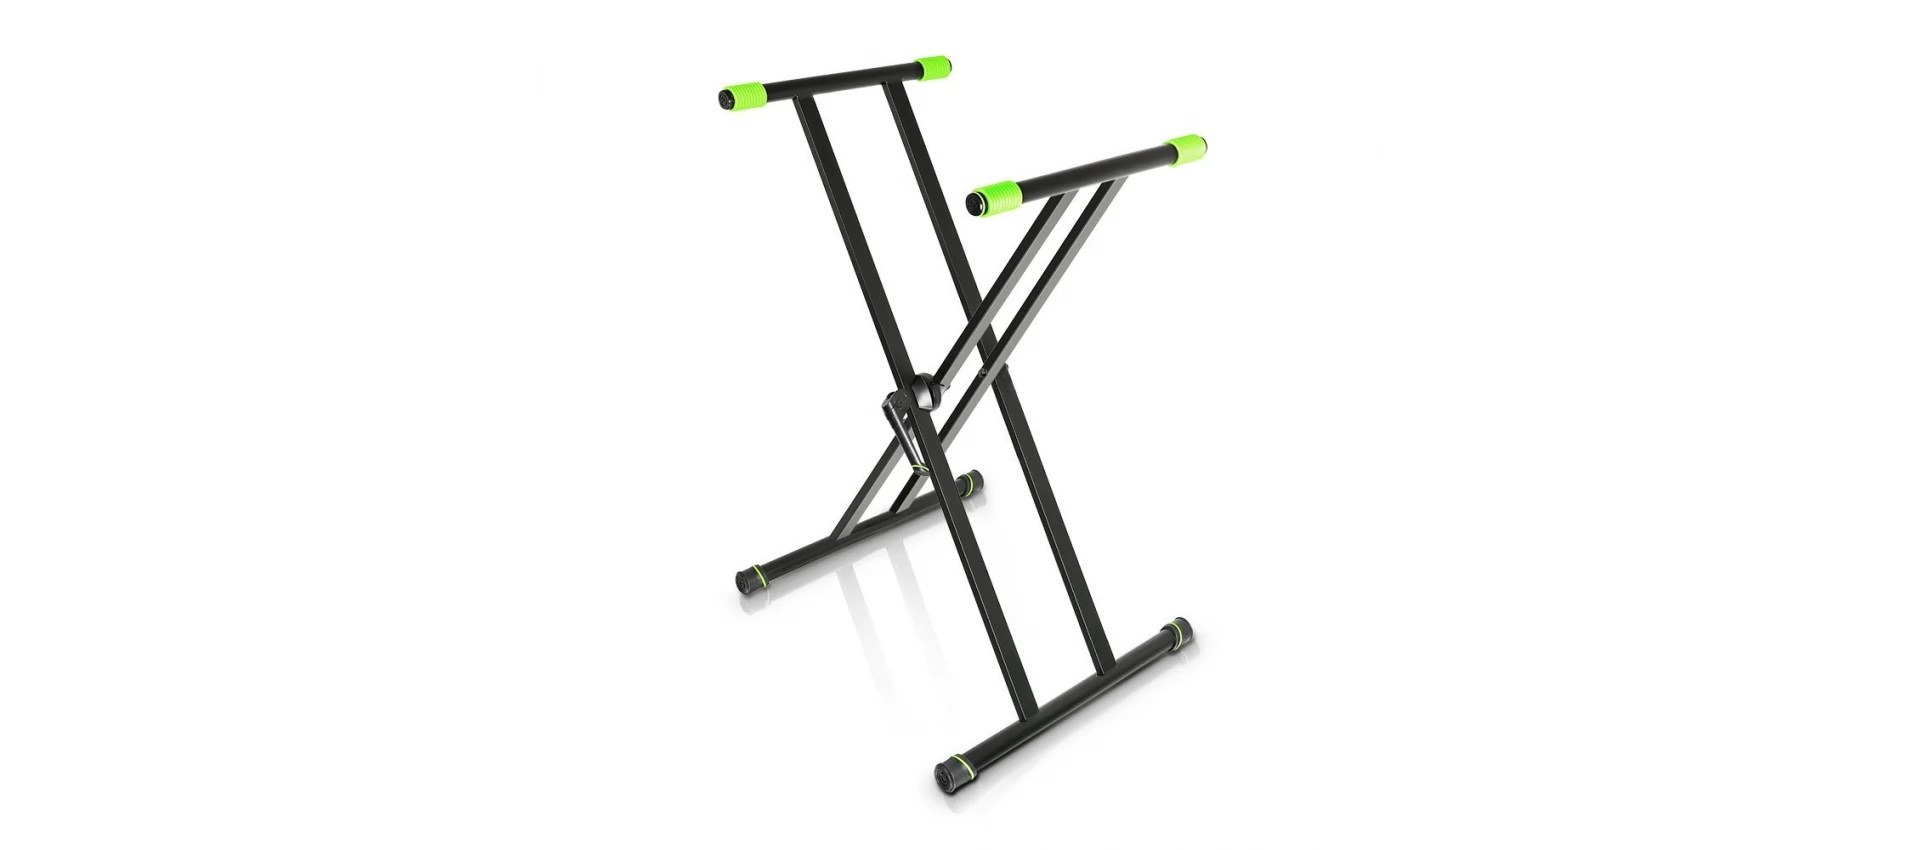 Gravity Ksx 2 Keyboard Stand X Form Double